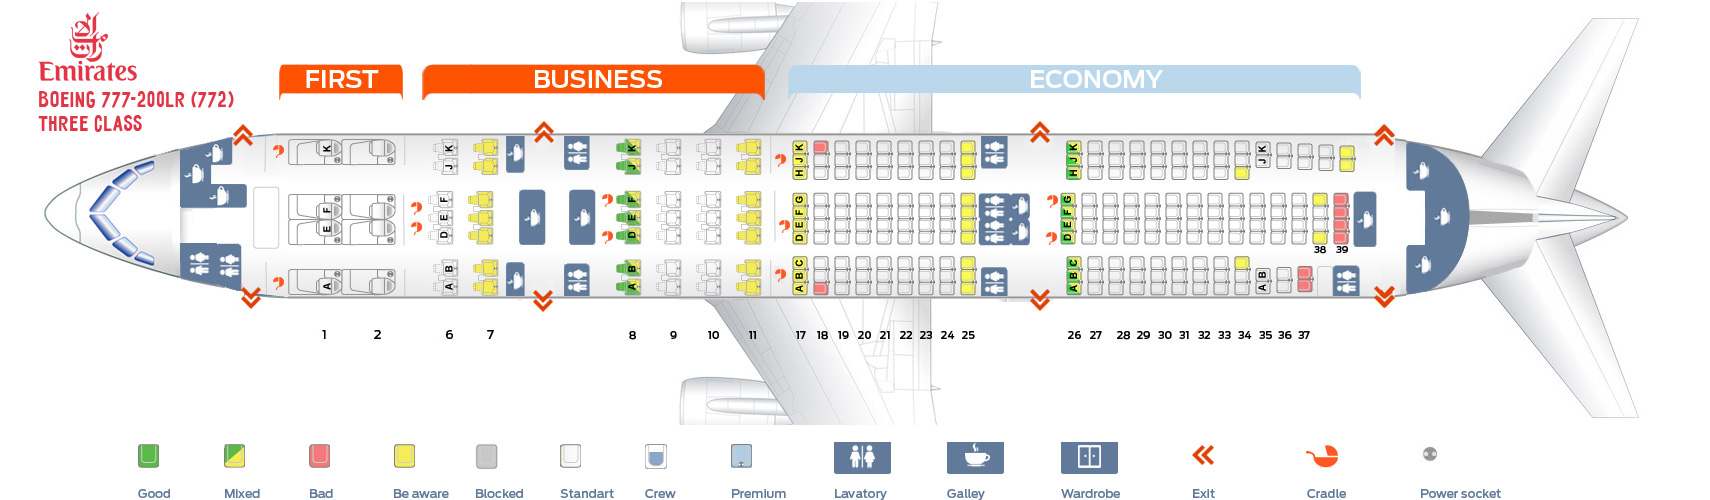 Emirates Seat Map Seat map Boeing 777 200 Emirates. Best seats in the plane Emirates Seat Map